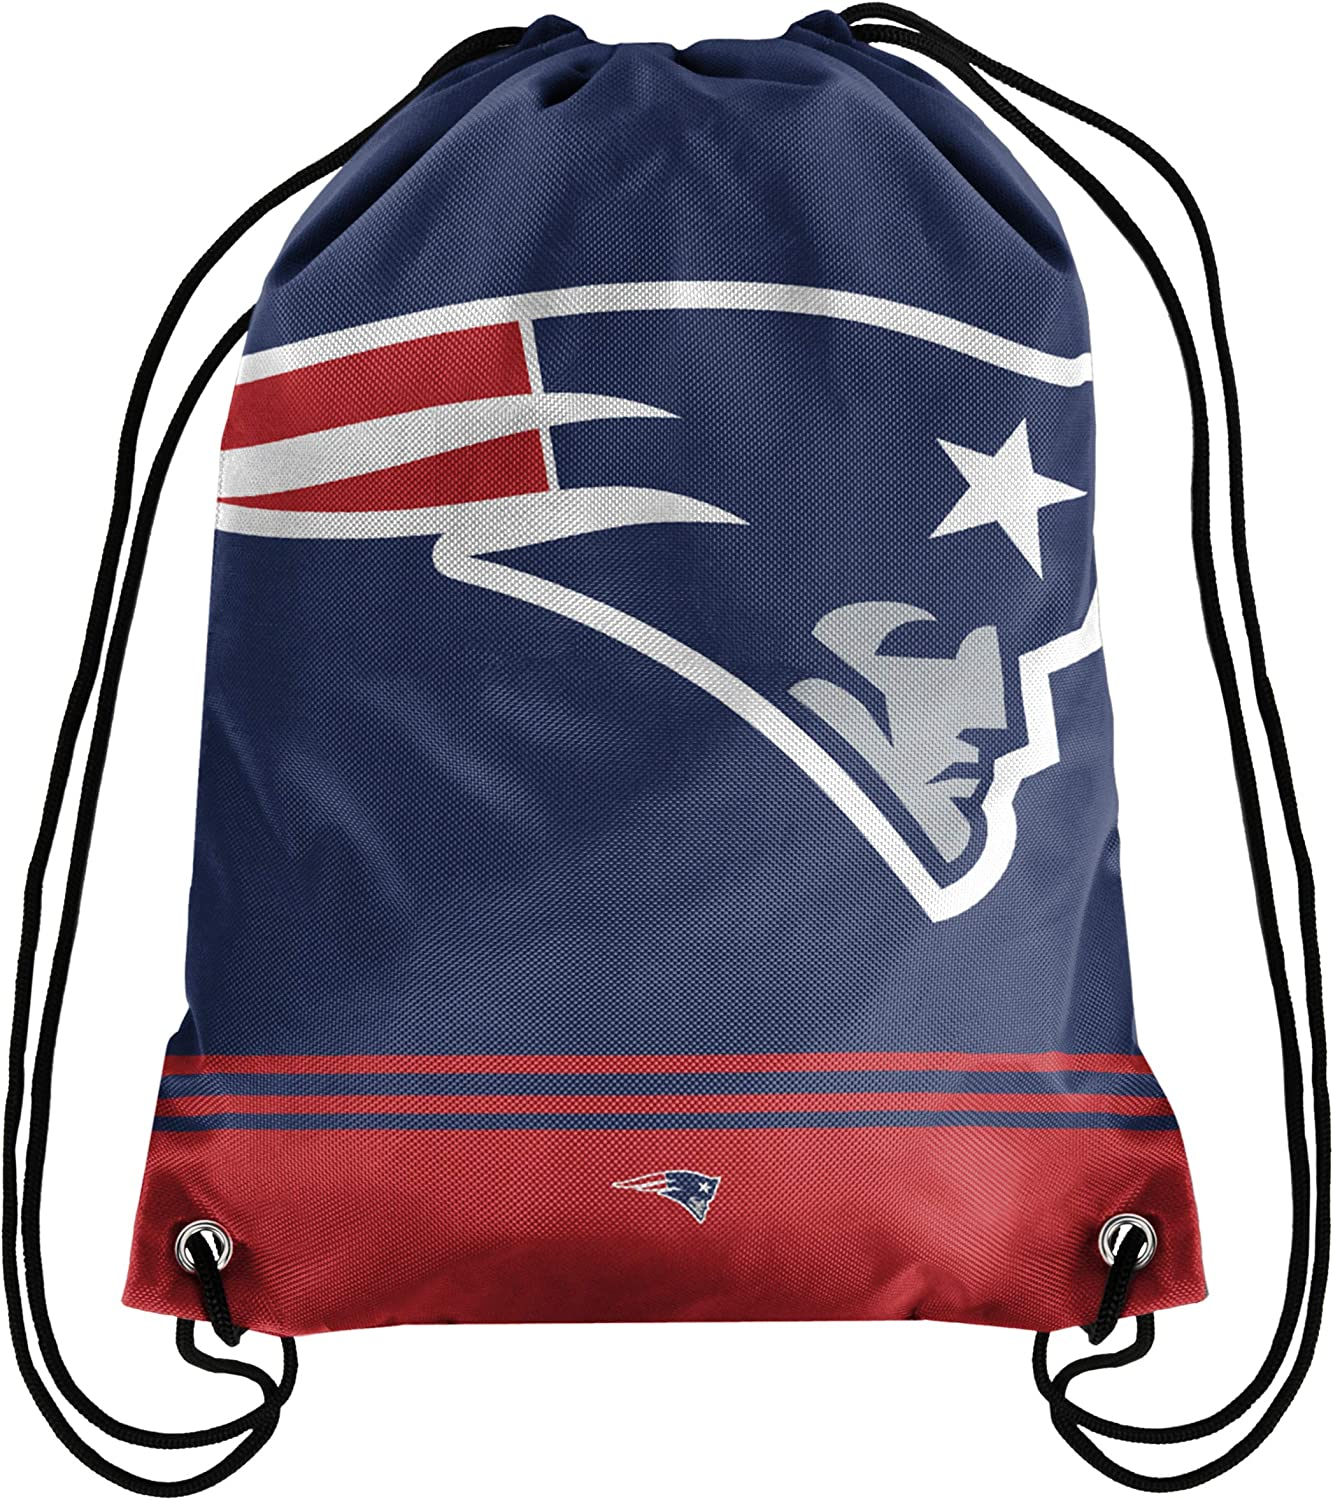 FOCO Big Logo Drawstring Backpack – Limited Edition Bag – NFL Gear – Show Your Team Spirit with Officially Licensed Fan Gear